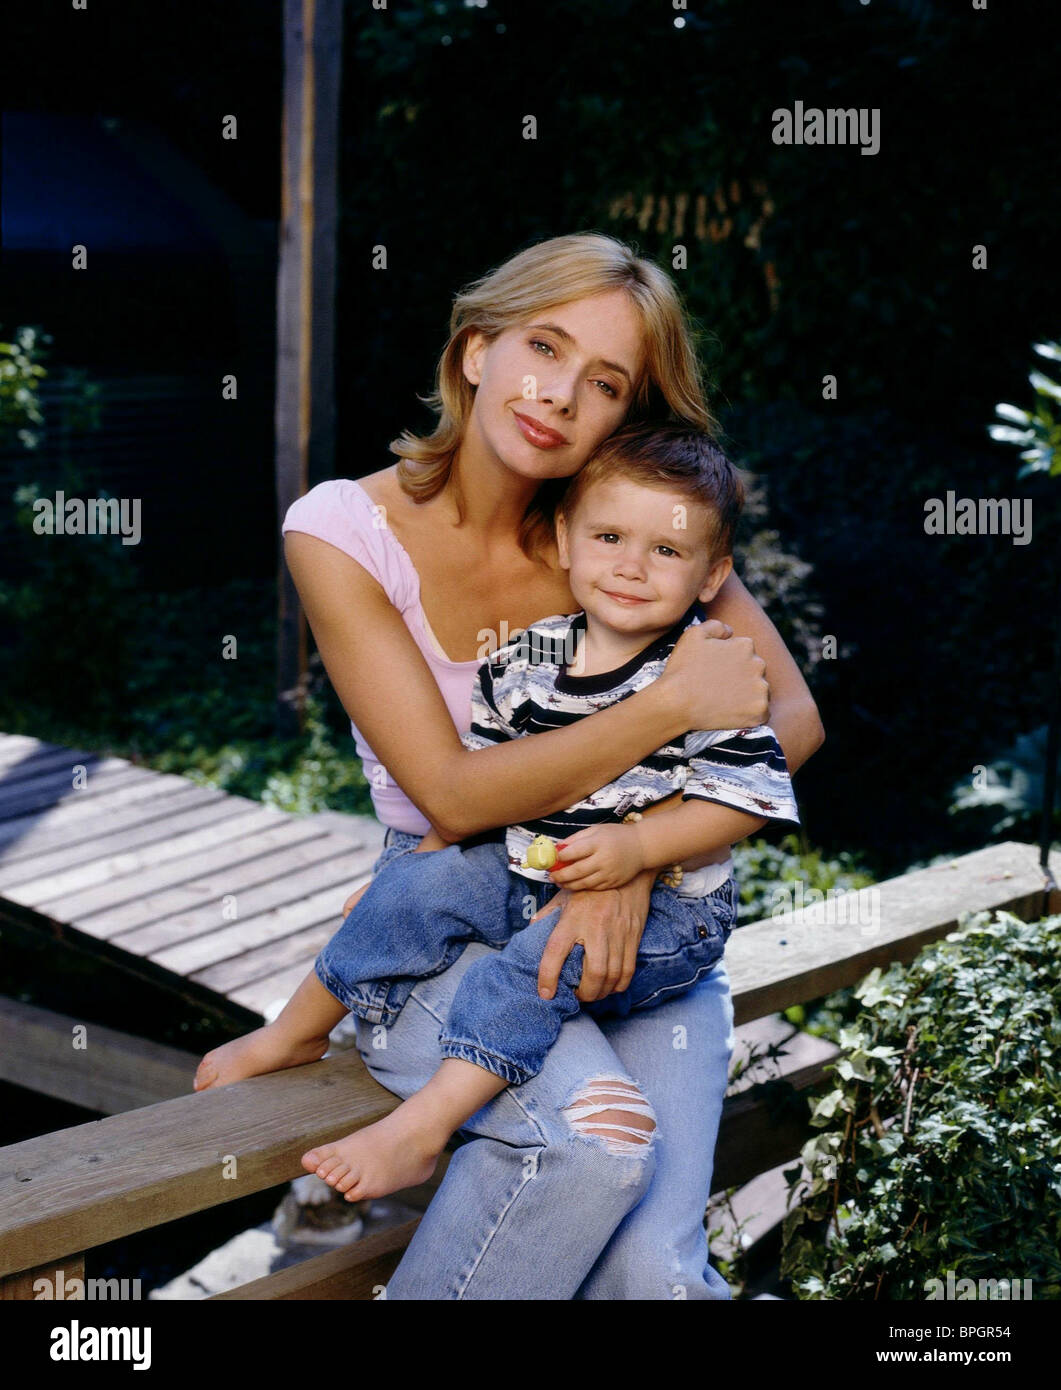 ROSANNA ARQUETTE SWITCHED AT BIRTH MISTAKEN IDENTITY TWO BABIES 1999